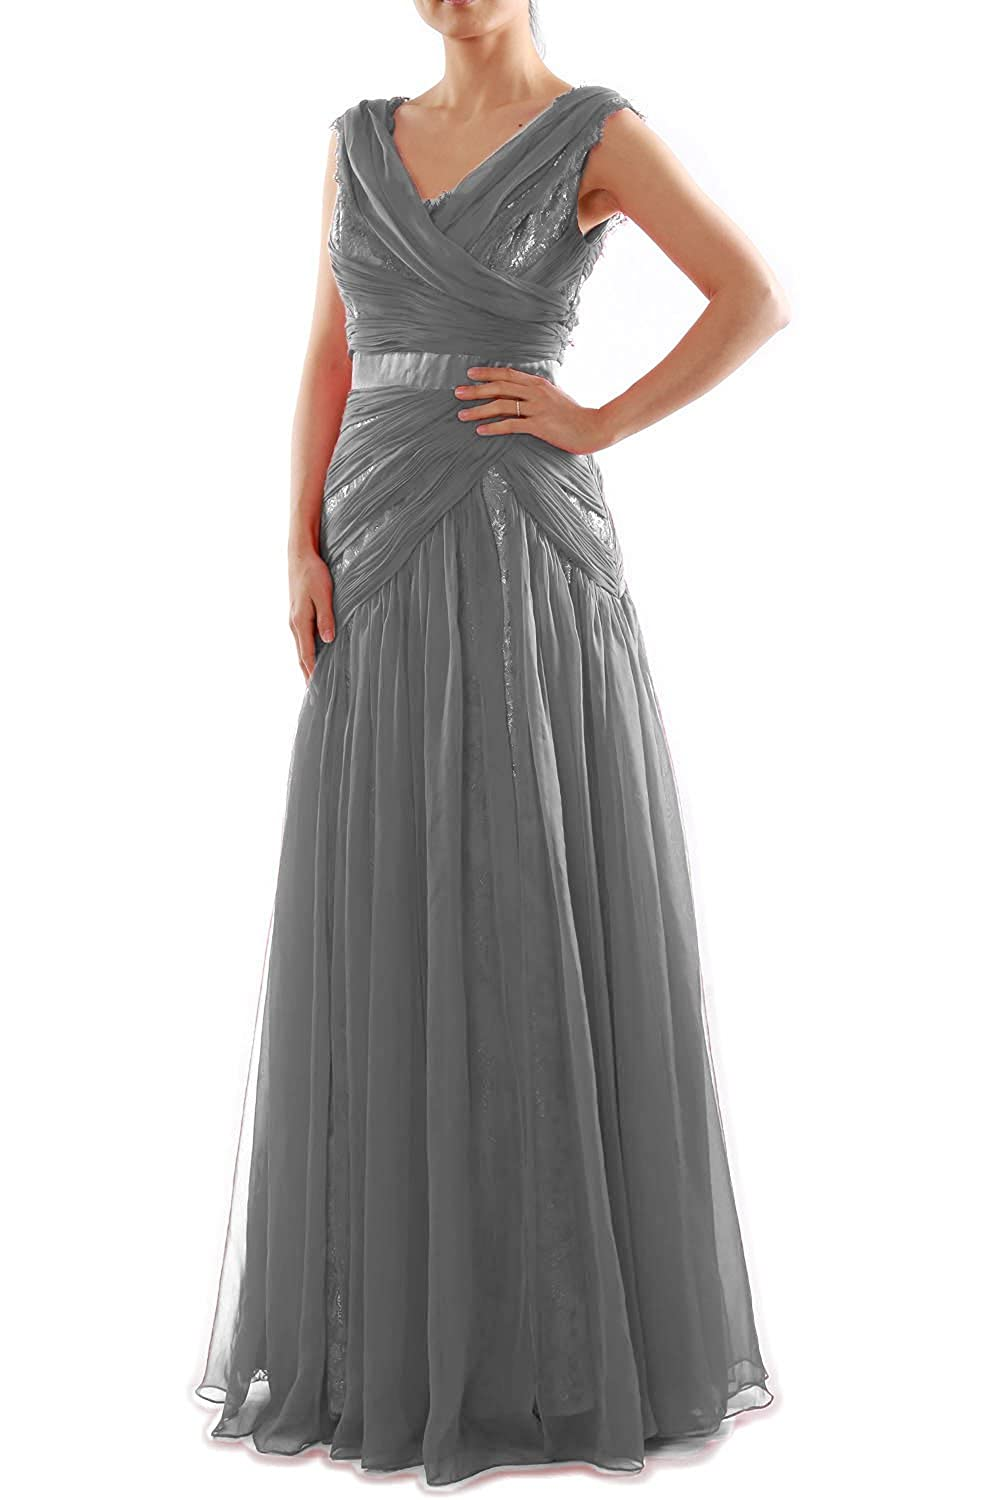 MACloth V Neck Long Ruched Chiffon Lace Formal Evening Dress Prom Party Gown